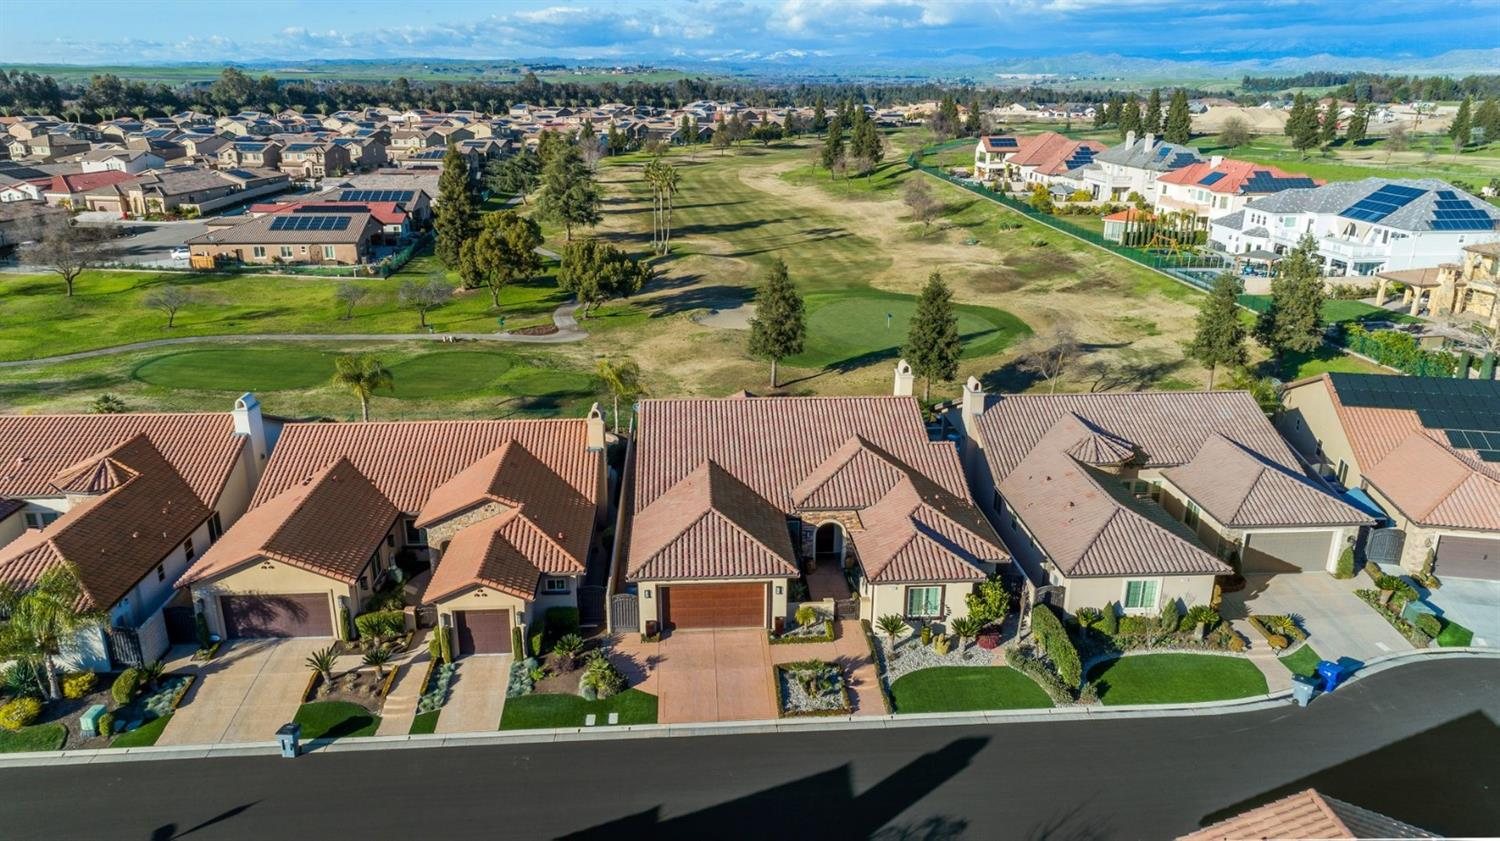 If you have been dreaming about Country Club living, here's your  chance! Magnificent 3 br 2.5 bath, Copper River Country Club home  (large golf course lot!), in the much coveted, Gary McDonald gated  community known as Buena Salud. This exceptional home features an  en-suite bath in the master and one of the guest suites. Beautiful  hardwood floors in all main living spaces, upgraded carpet in bedrooms and tile in baths. Beautifully appointed Chef's kitchen with high end appliances, large double ovens, a full-size Bosch dishwasher plus a  Fisher Paykel two-drawer dishwasher in kitchen, a professional ice-maker and beverage/wine fridge with custom cabinets in formal dining room. Plantation shutters, two large covered patios equipped with heaters and wall mounted TV's, built-in BBQ/outdoor kitchen, plus hot tub and built-in gas fire pit at golf course side of yard. The 3 car garage has custom floor to ceiling cabinets plus beautiful epoxy flooring AND central vac.